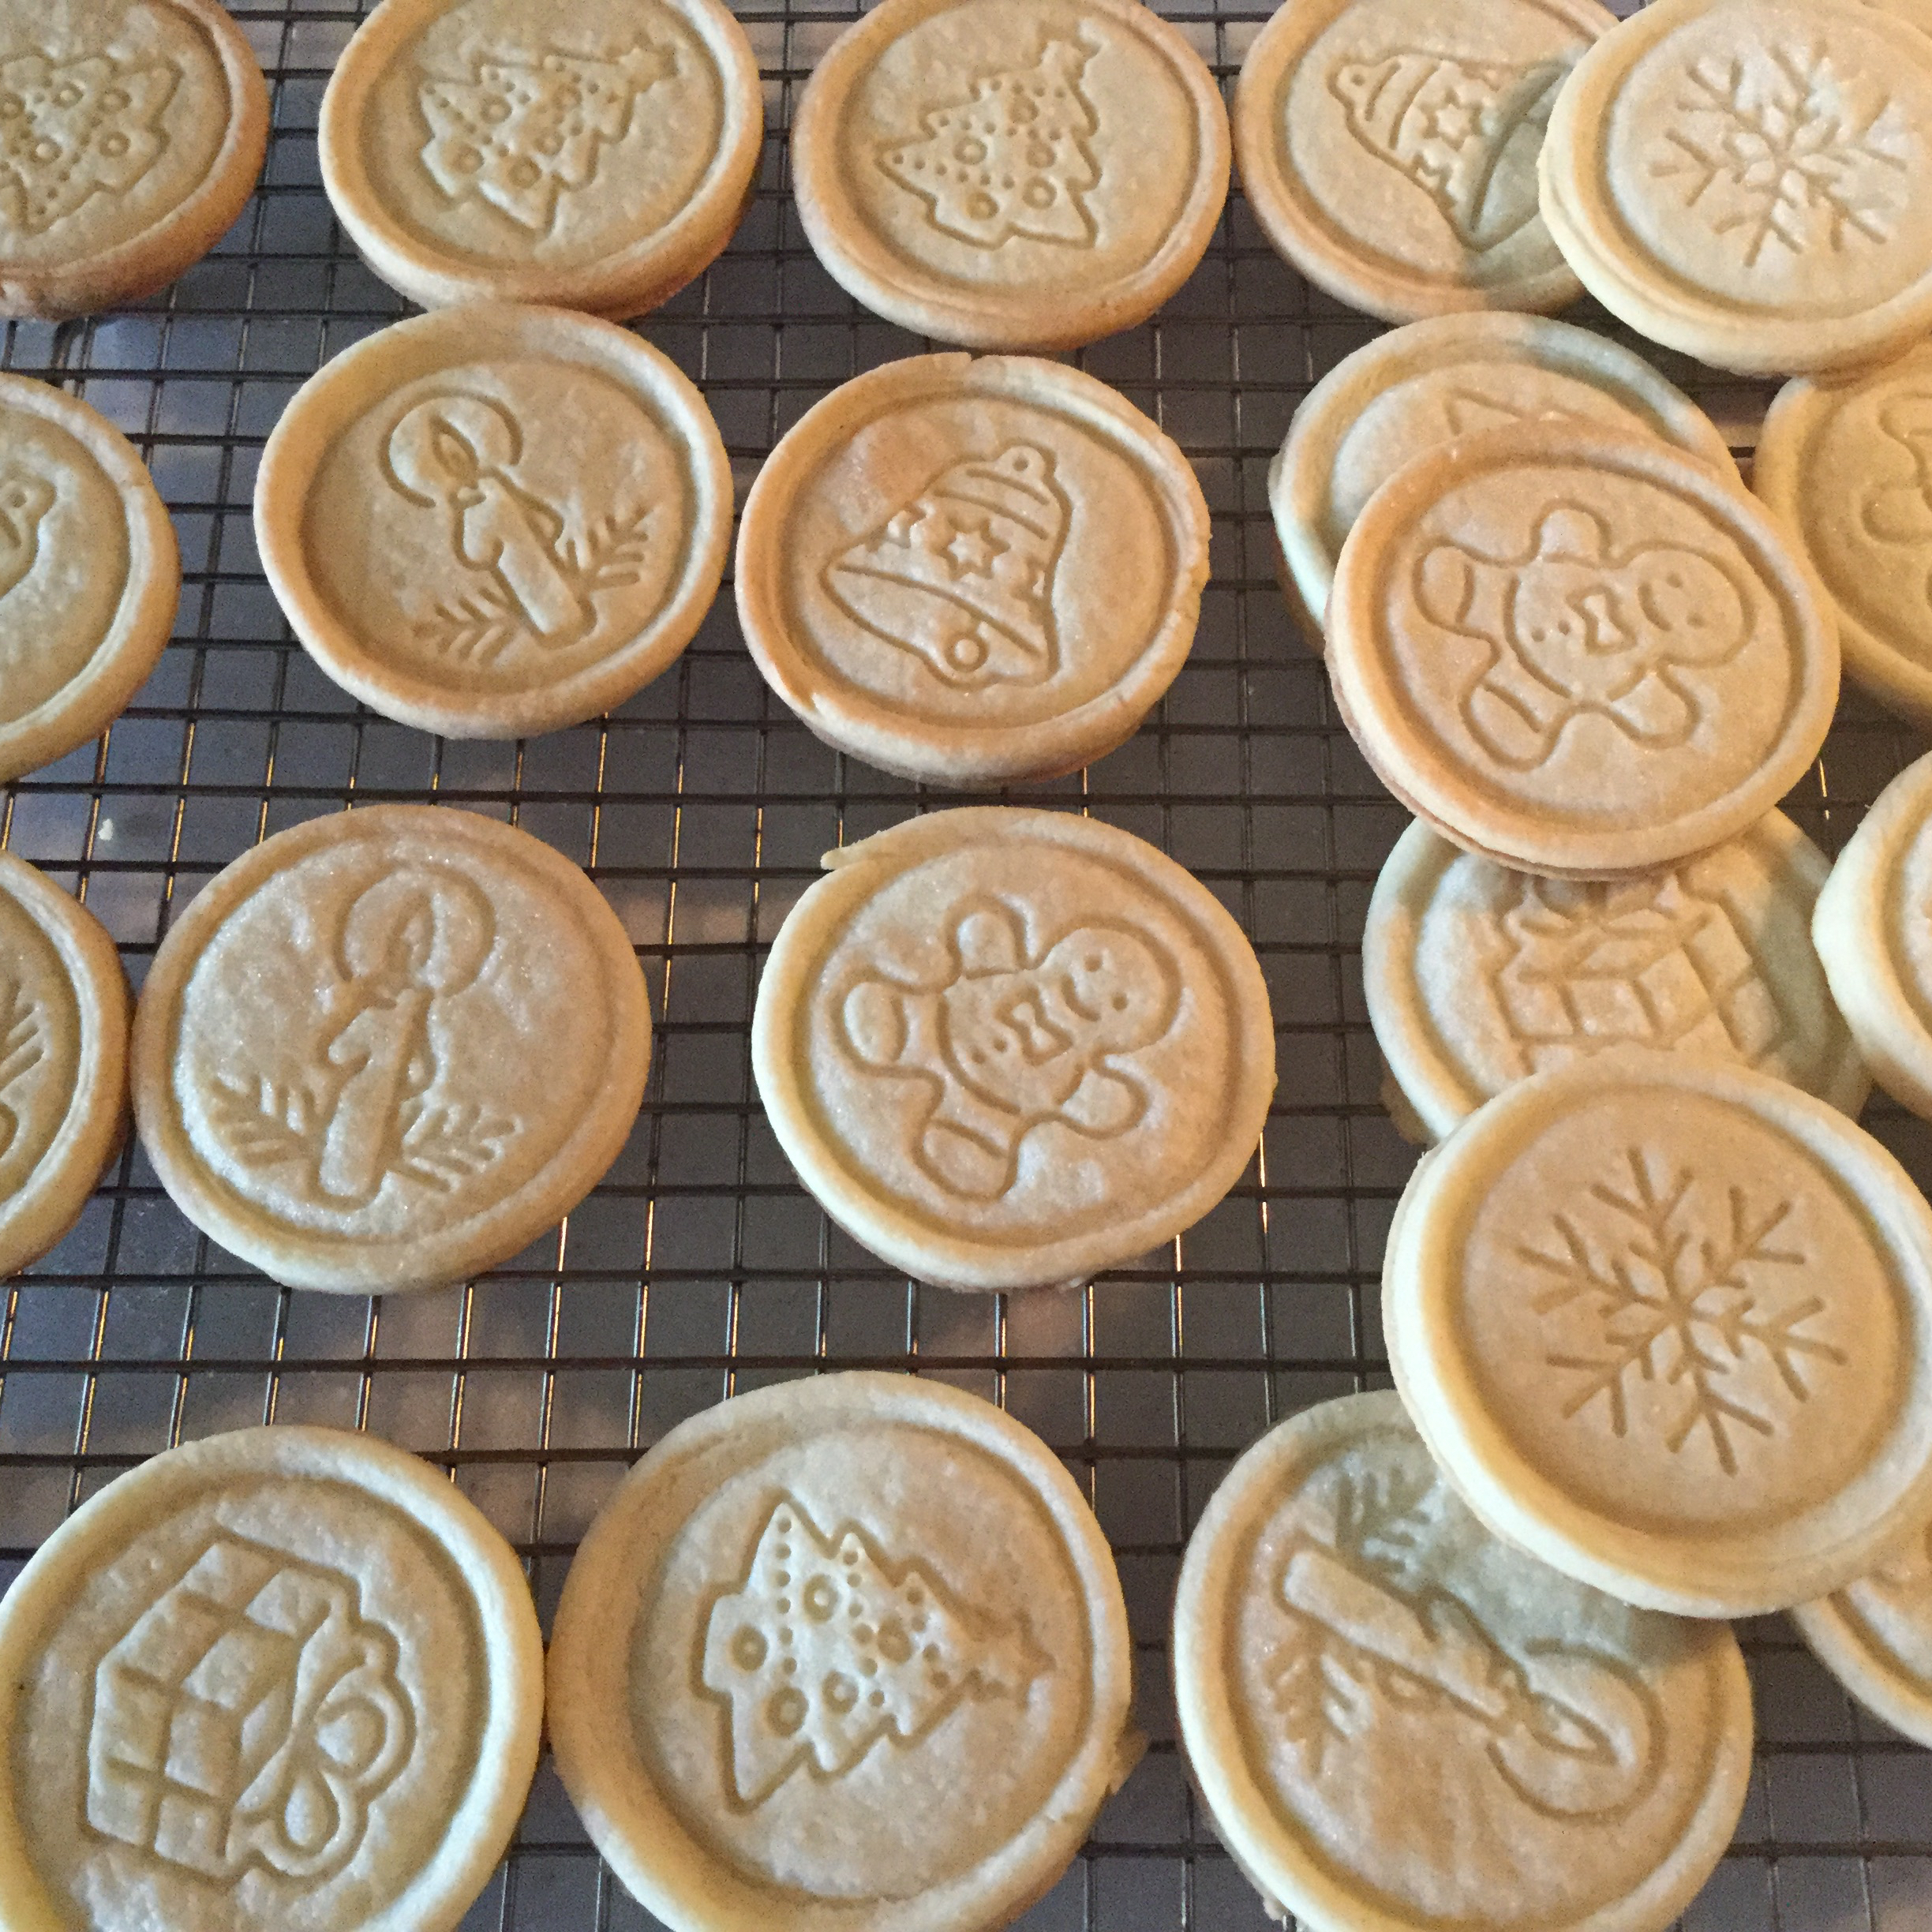 Ceramic Mold Cookies Judy Roothoff Maughan